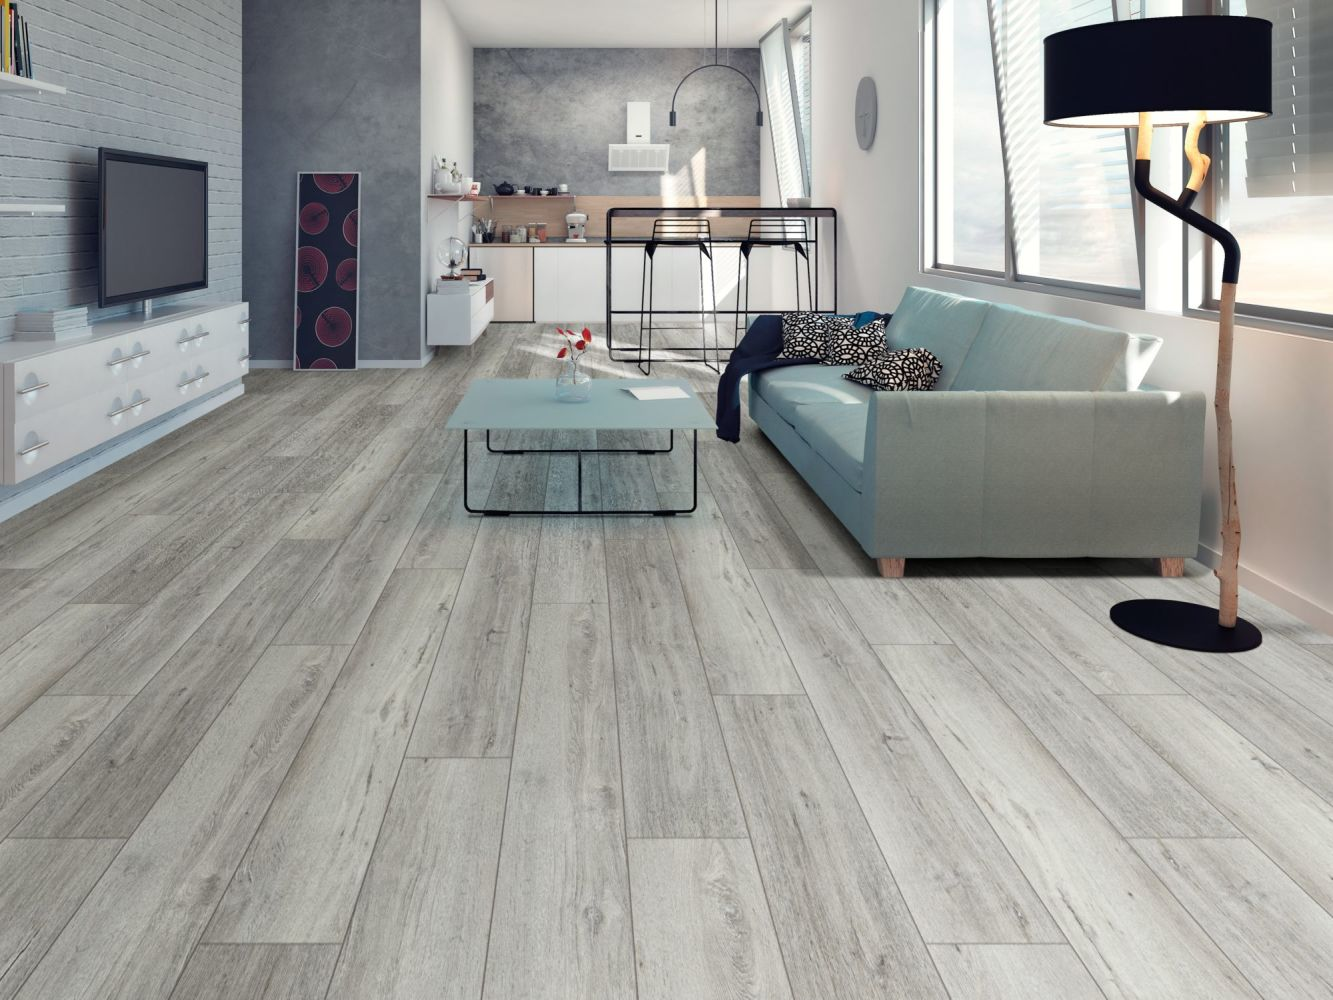 Shaw Floors Resilient Property Solutions White Oak 720c Plus Wye Oak 05004_516RG